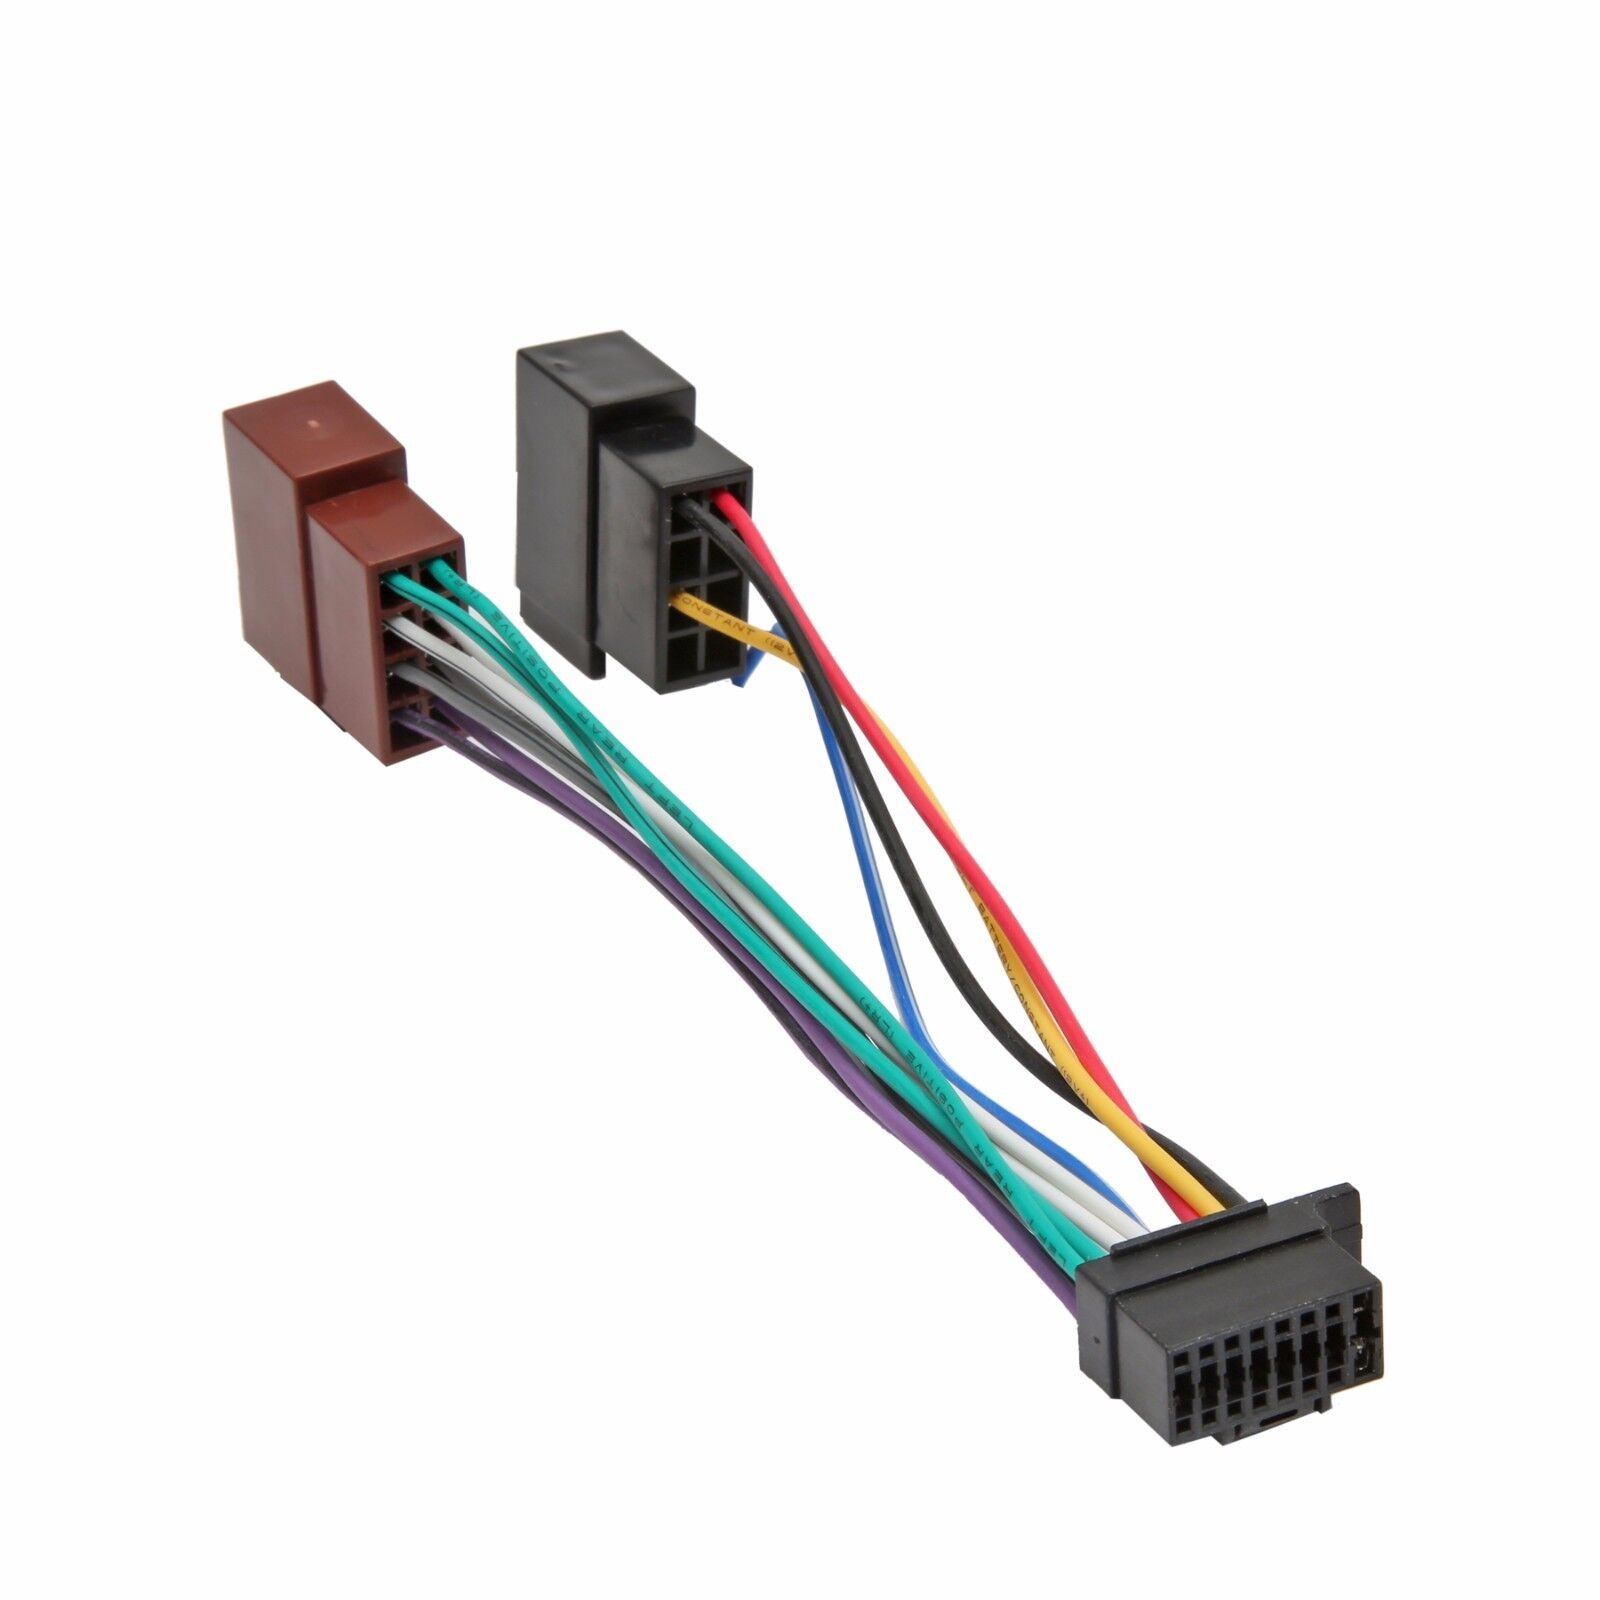 Sony Car Stereo Radio 16 Pin Wiring Wire Plug Harness Ebay Fileelectret Condenser Microphone Schematicpng Wikimedia Commons Iso Connector Adaptor Rh Com